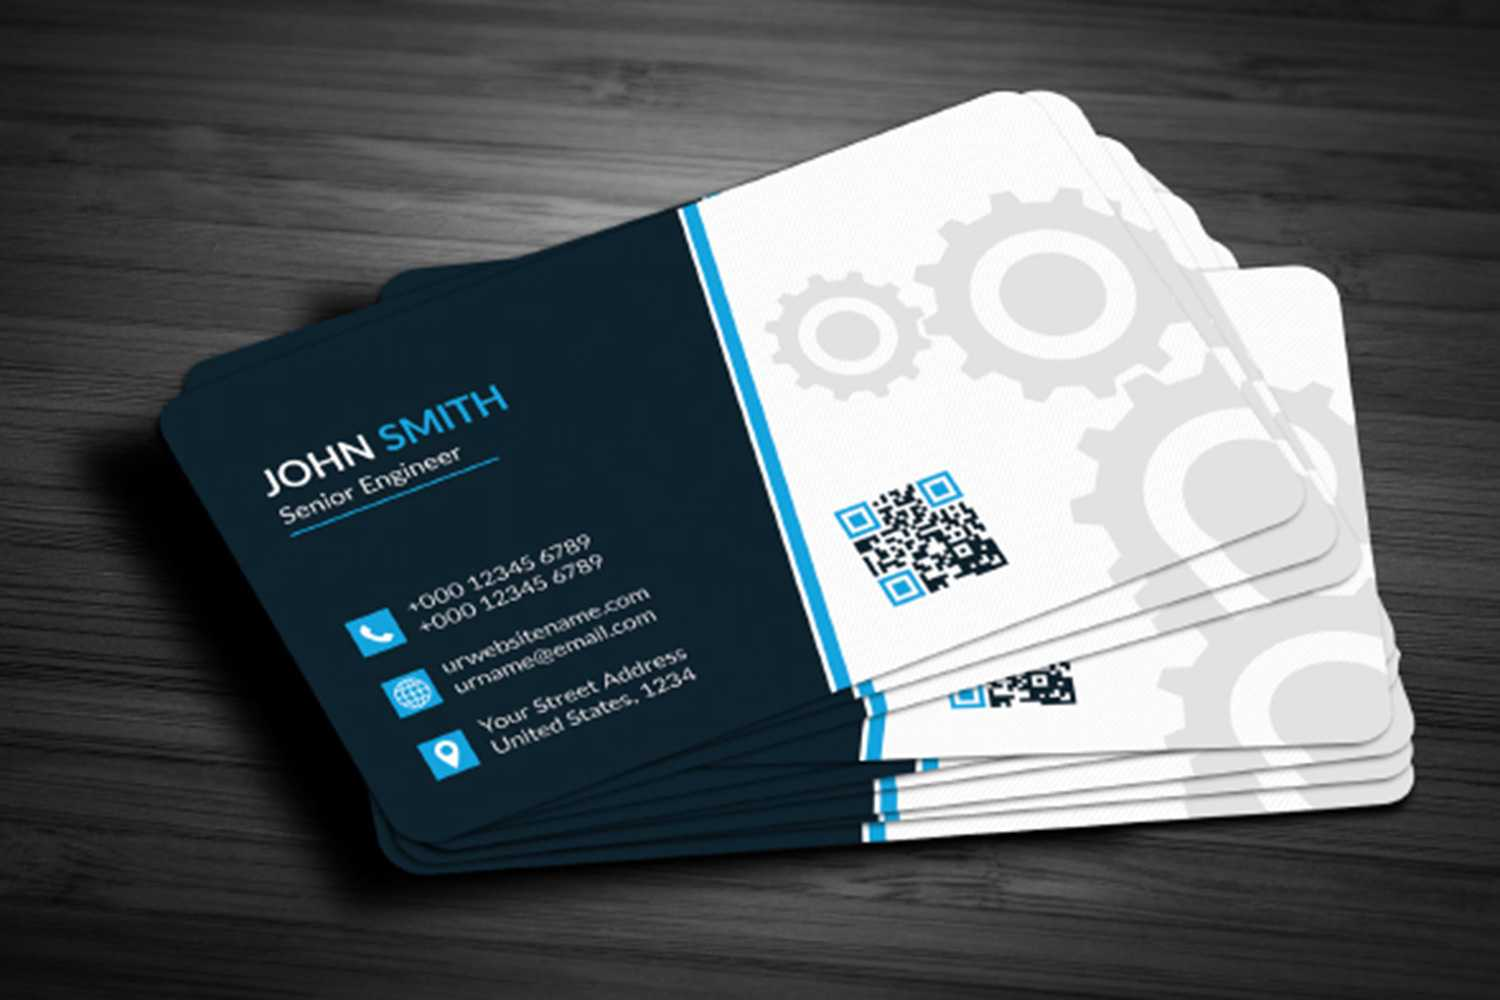 006 Editable Business Cards Templates Free Download Card Regarding Templates For Visiting Cards Free Downloads